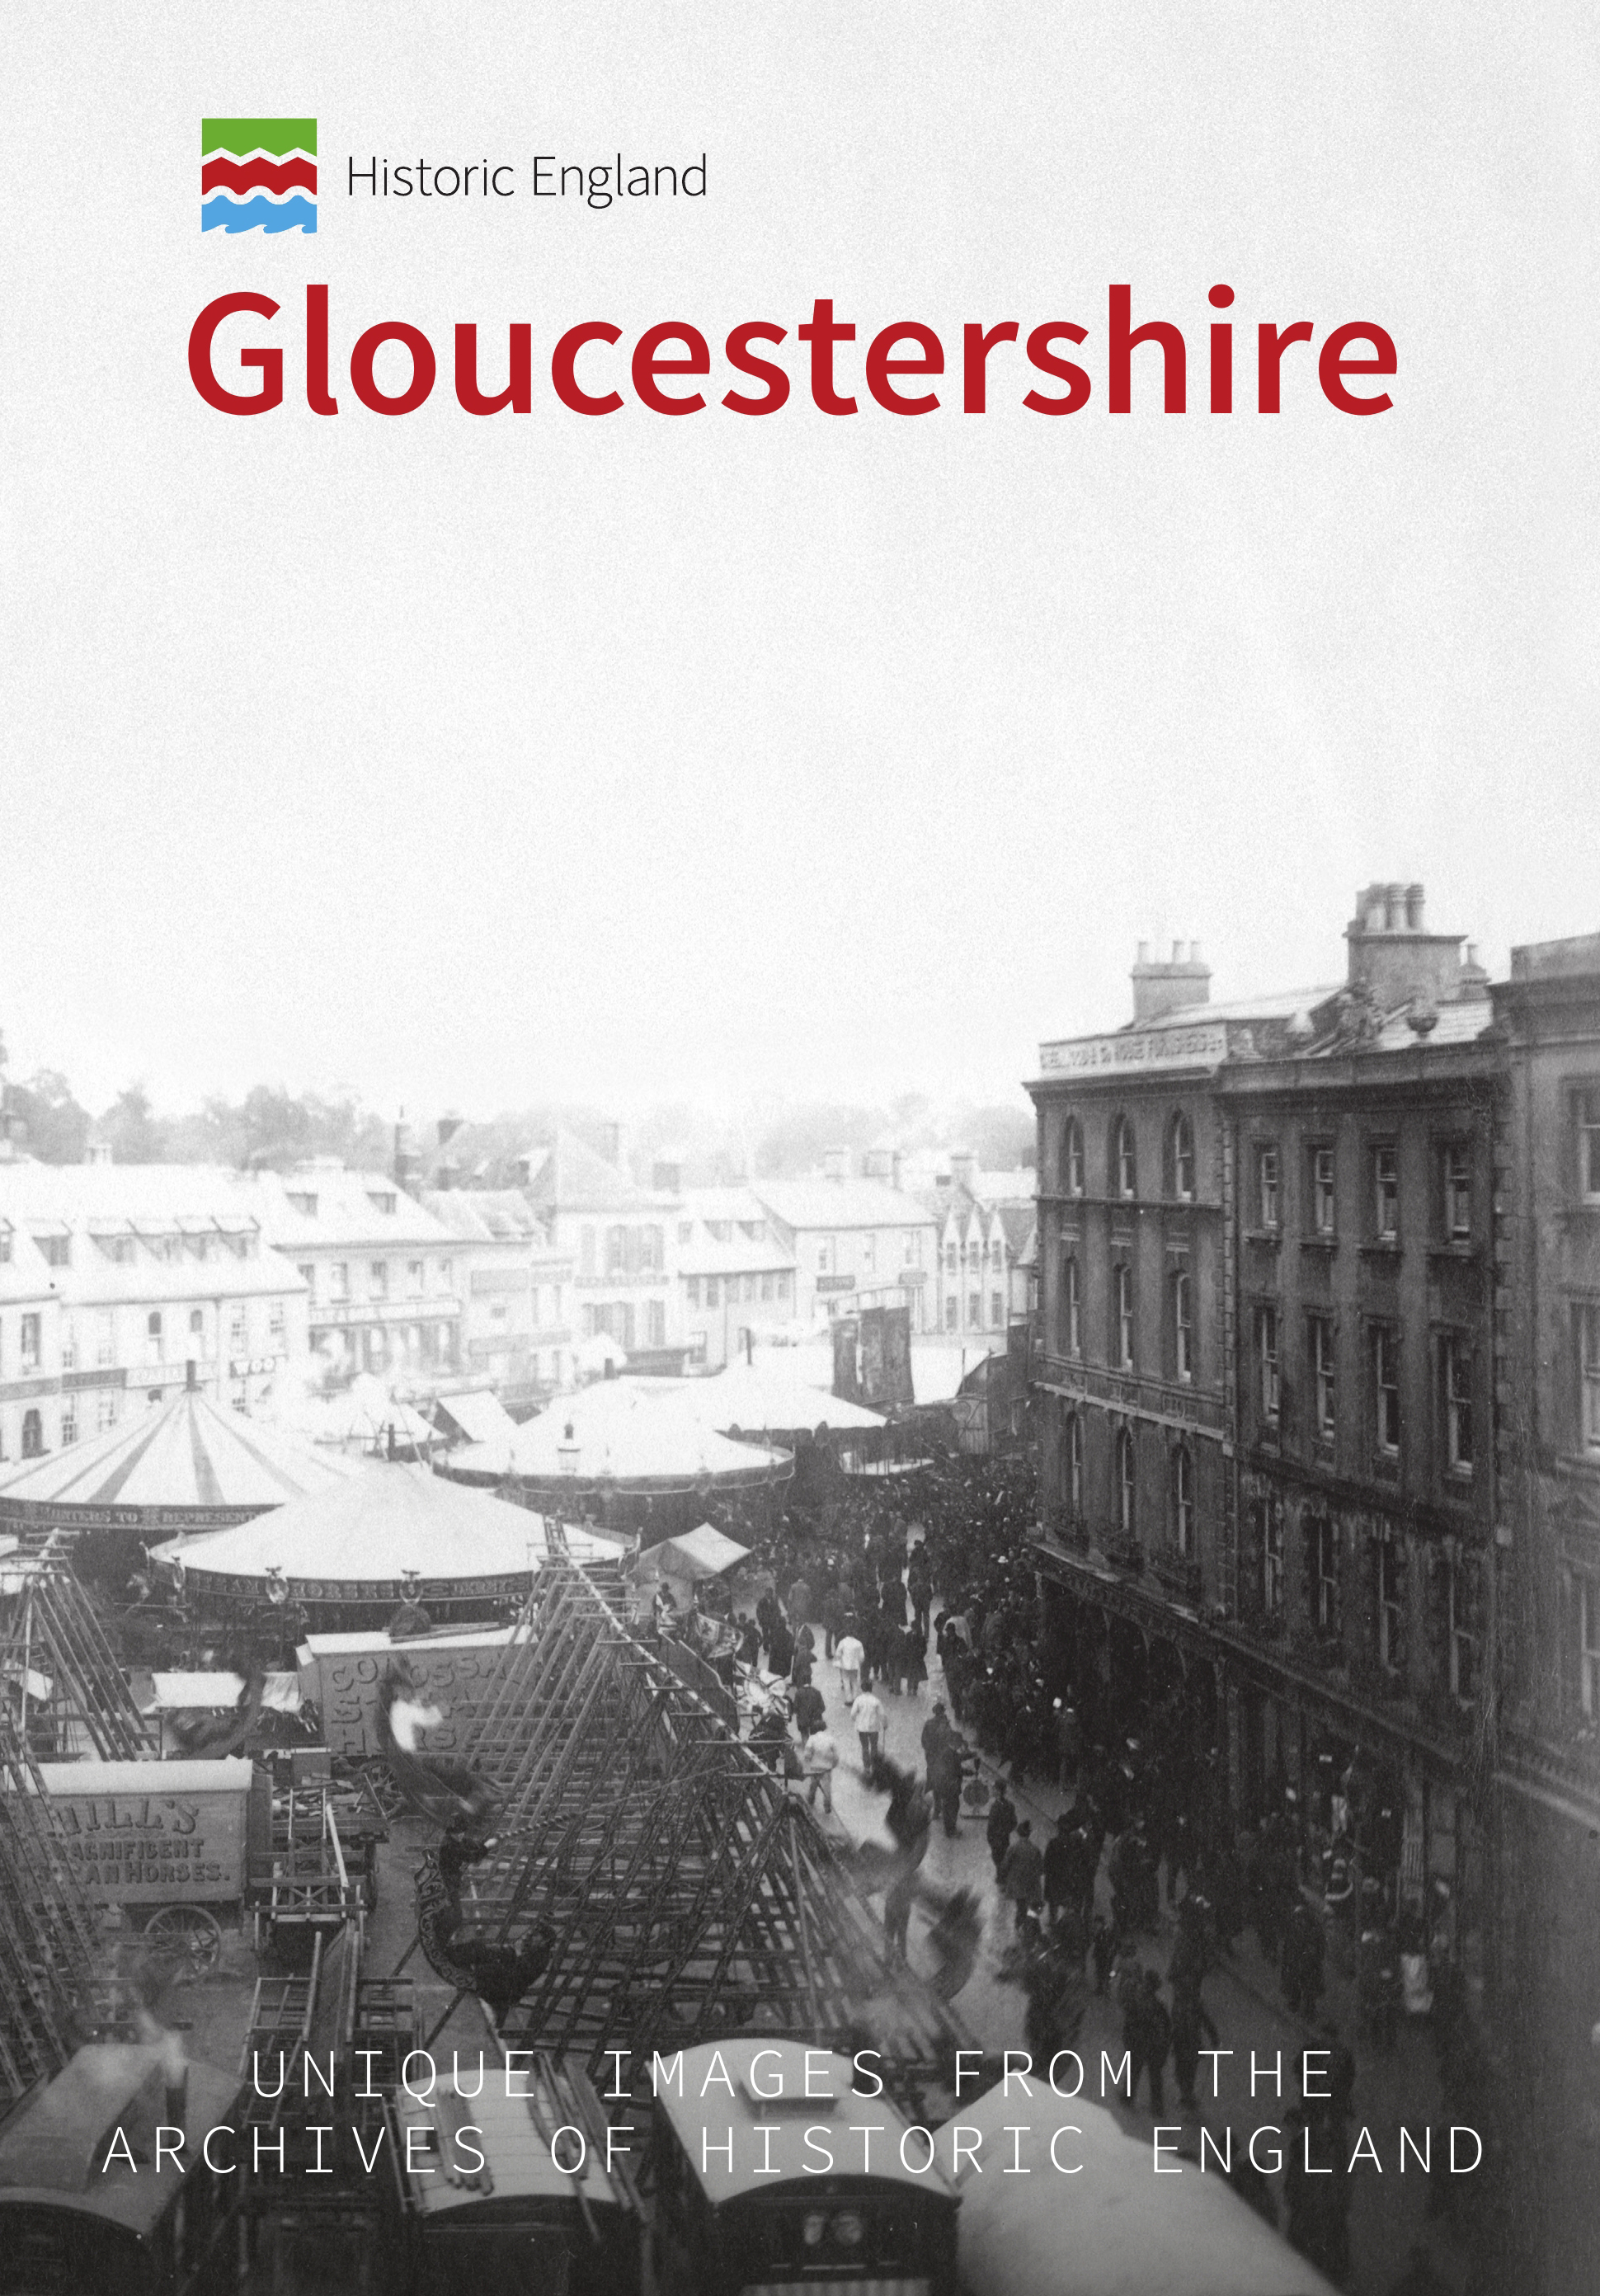 Published in August 2019 by Amberley, and also available via Amazon. Also available as an e-book.  The photographs are taken from the Historic England Archive, a unique collection of over 12 million photographs, drawings, plans and documents covering England's archaeology, architecture, social and local history. Pictures date from the earliest days of photography to the present and cover subjects from Bronze Age burials and medieval churches to cinemas and seaside resorts.